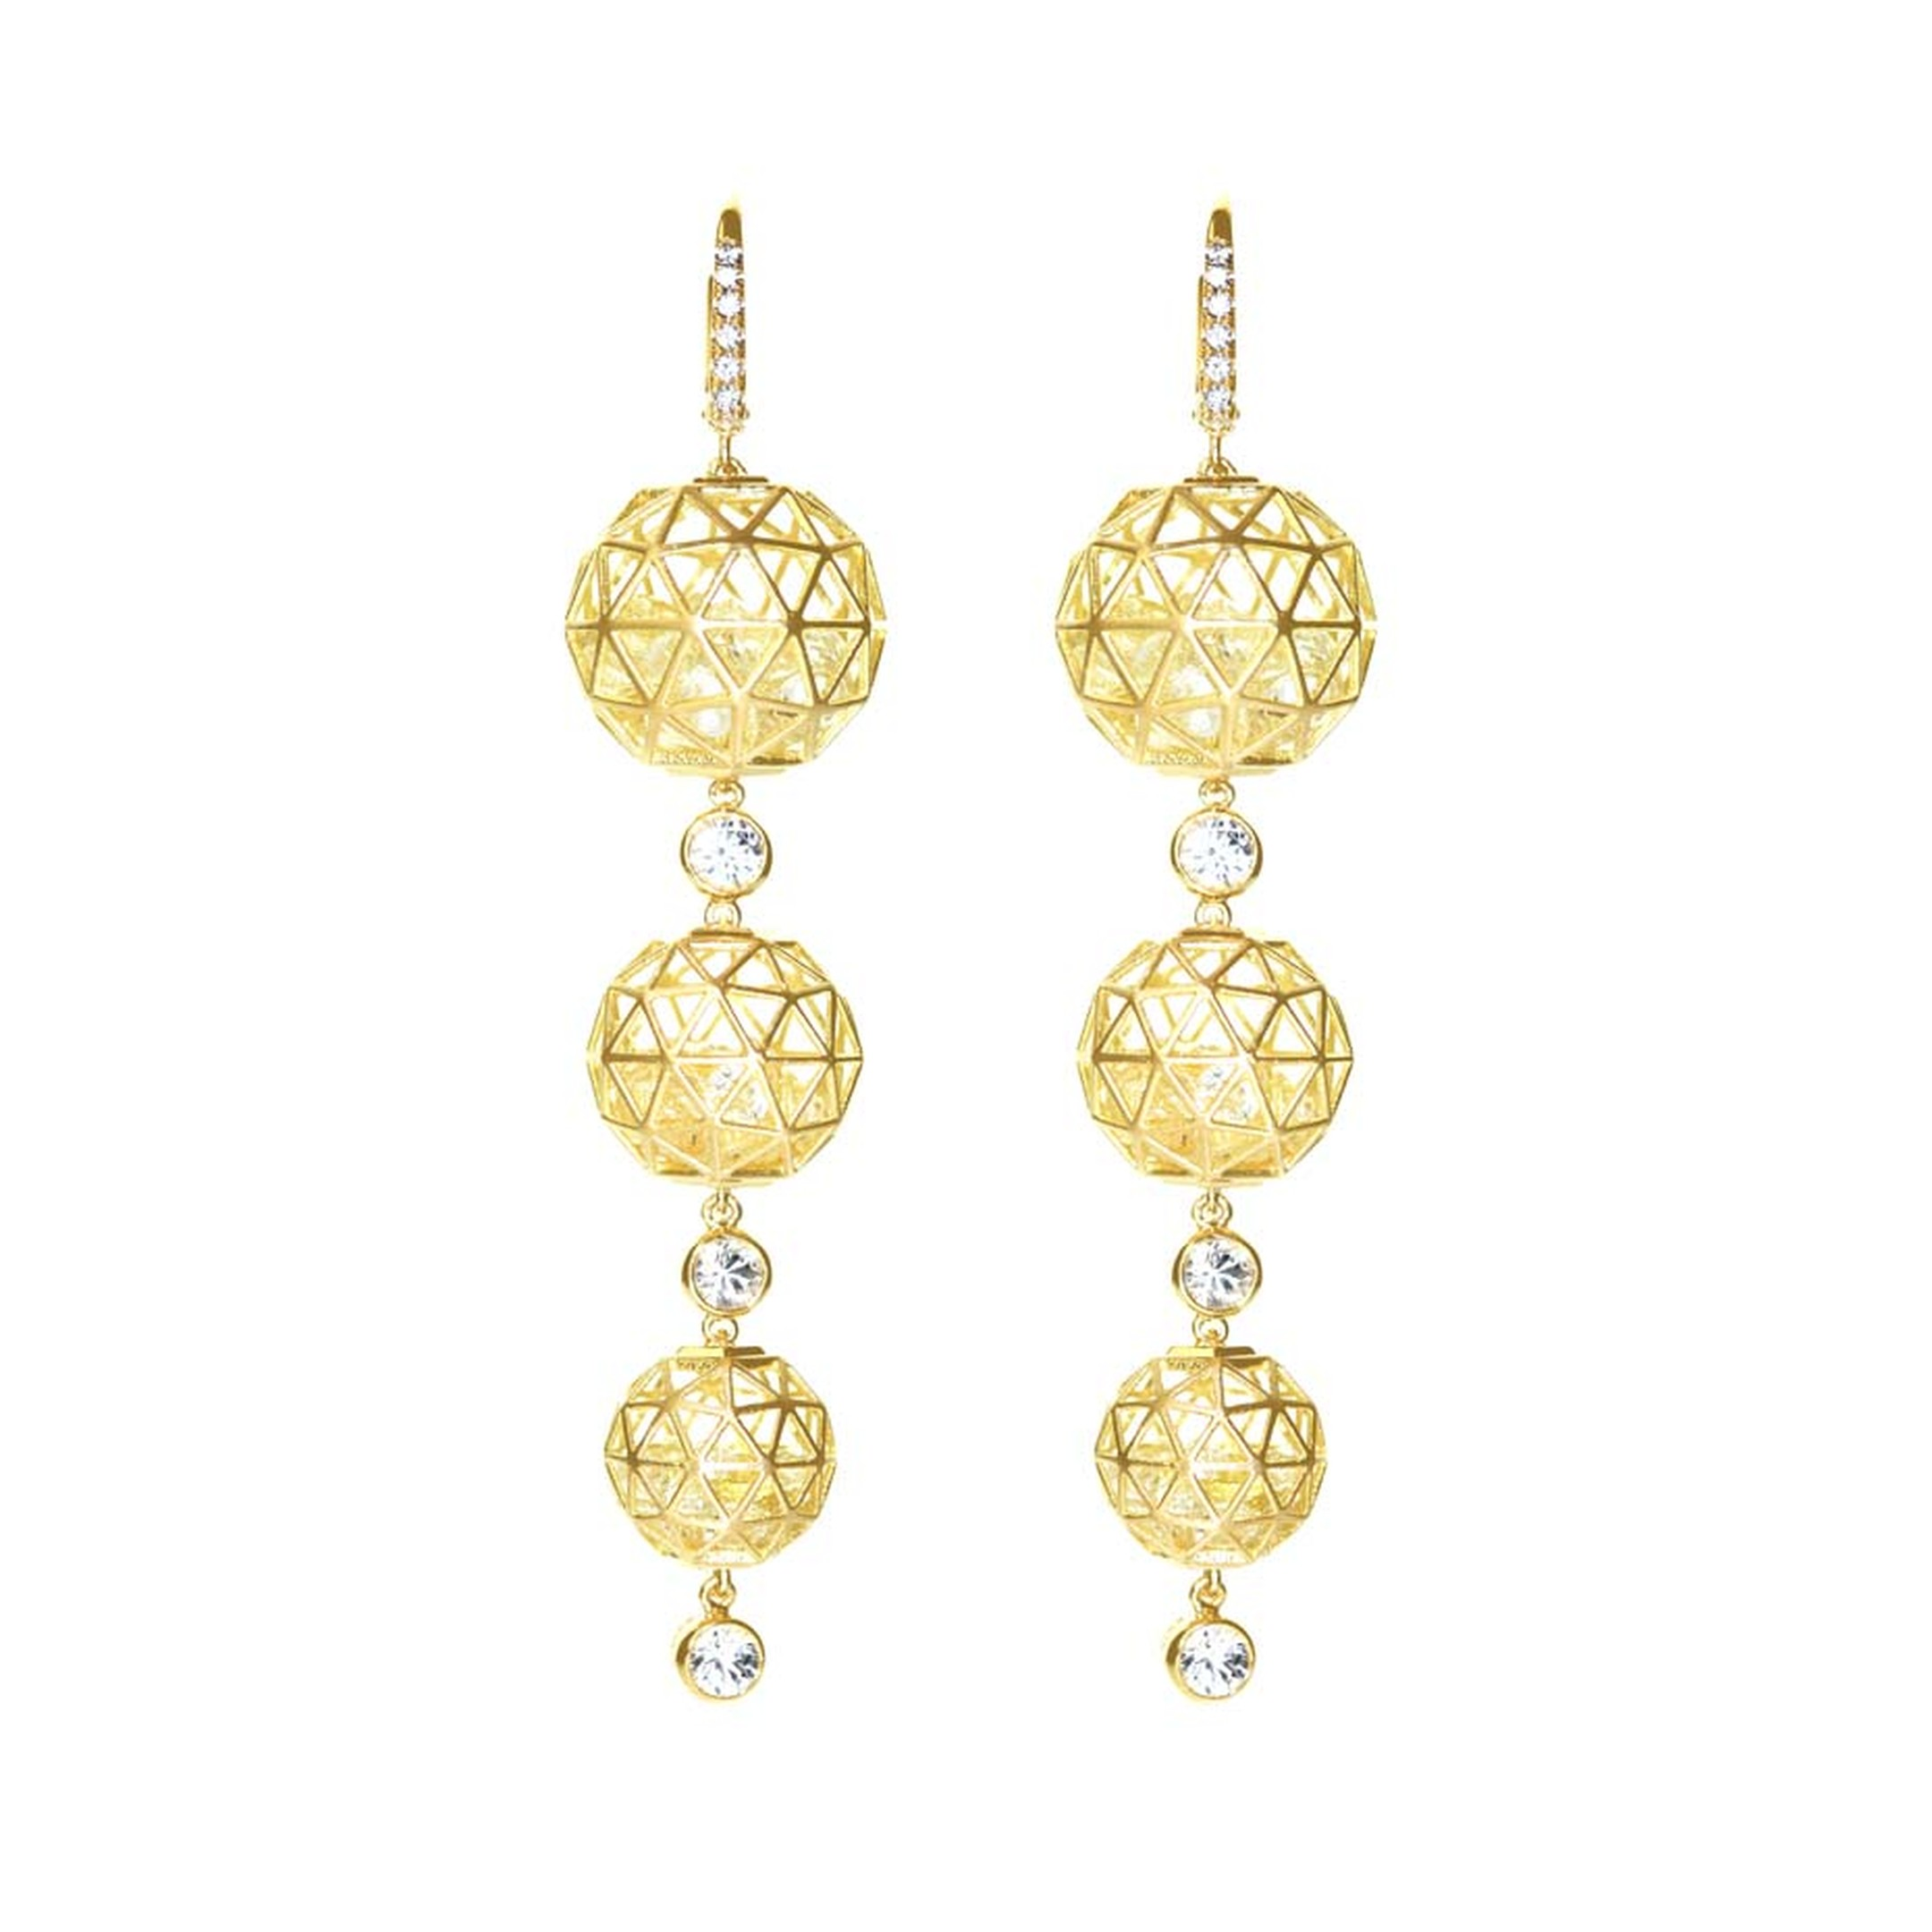 Roule & Co. Triple Geo earrings in yellow gold with yellow sapphires.